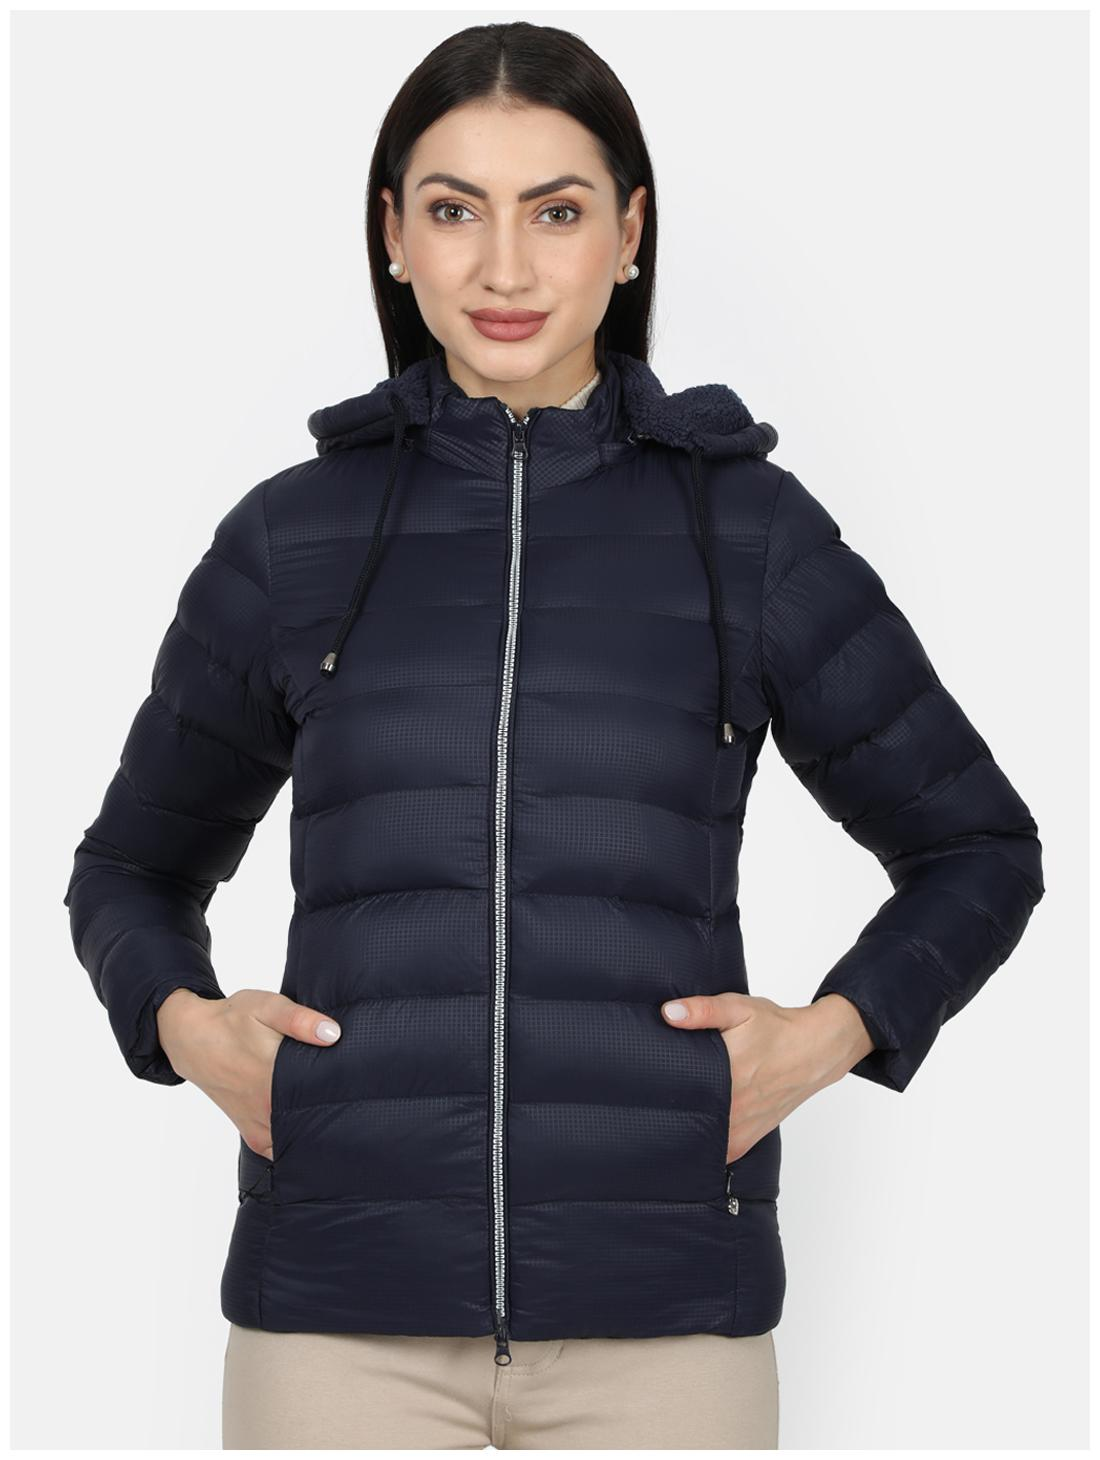 Women Solid Jacket ,Pack Of 1